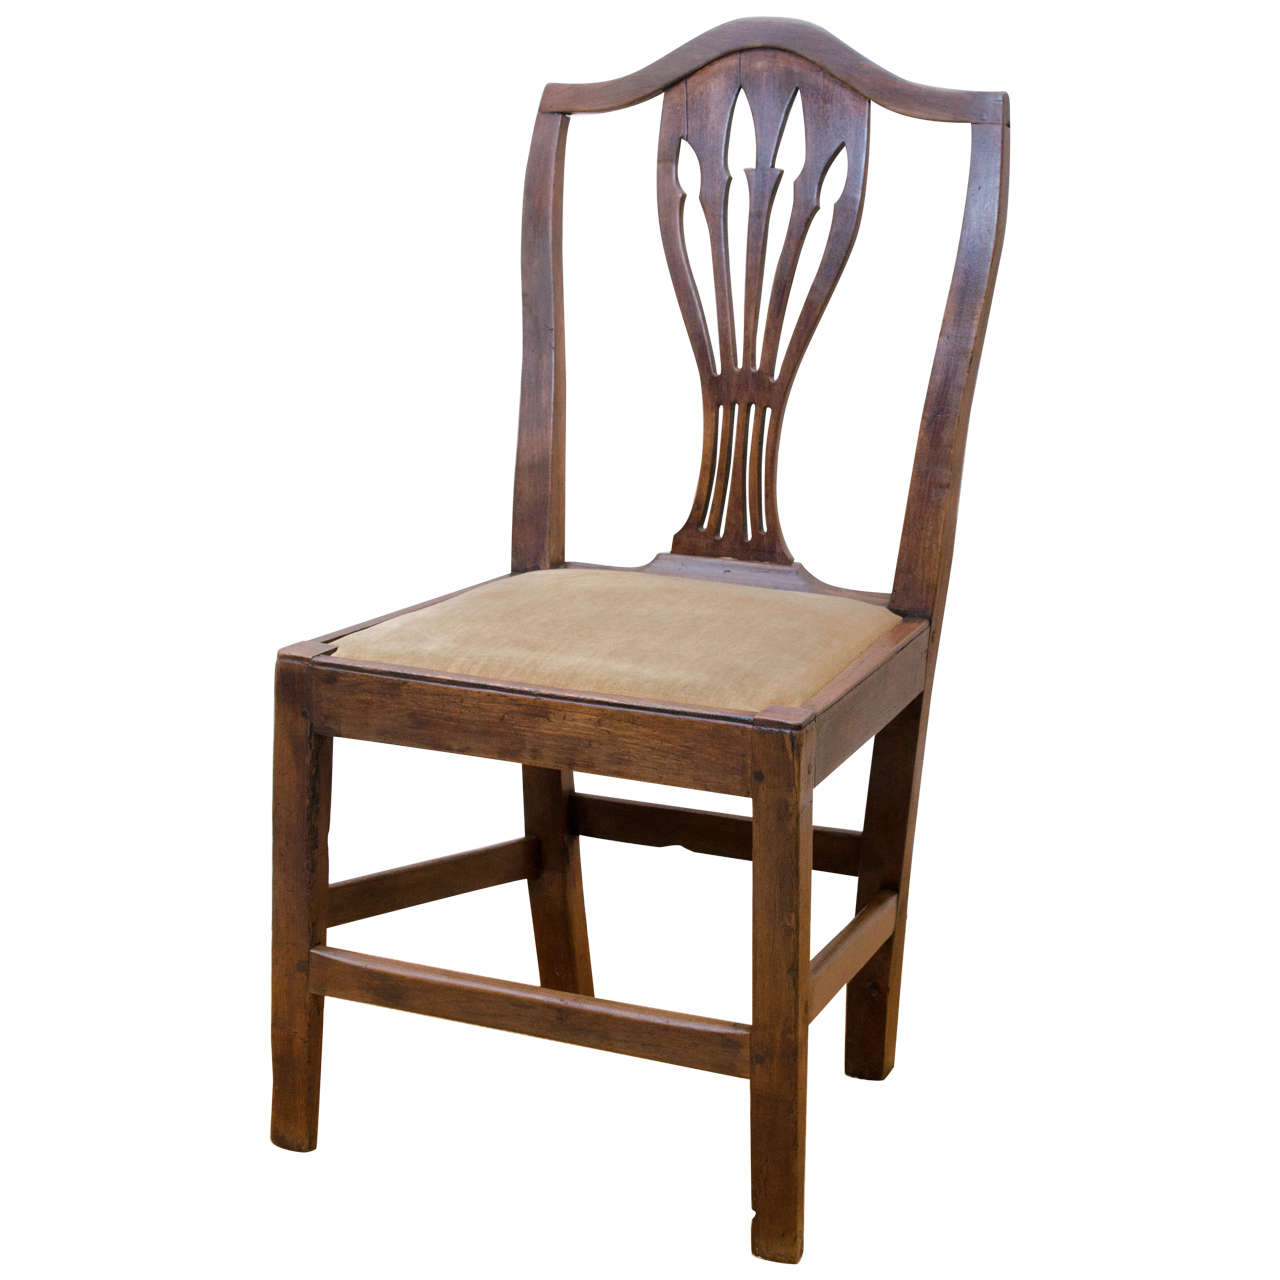 Merveilleux English 18th Century Oak Arrow Cut Out, Shield Back Country Side Chair For  Sale